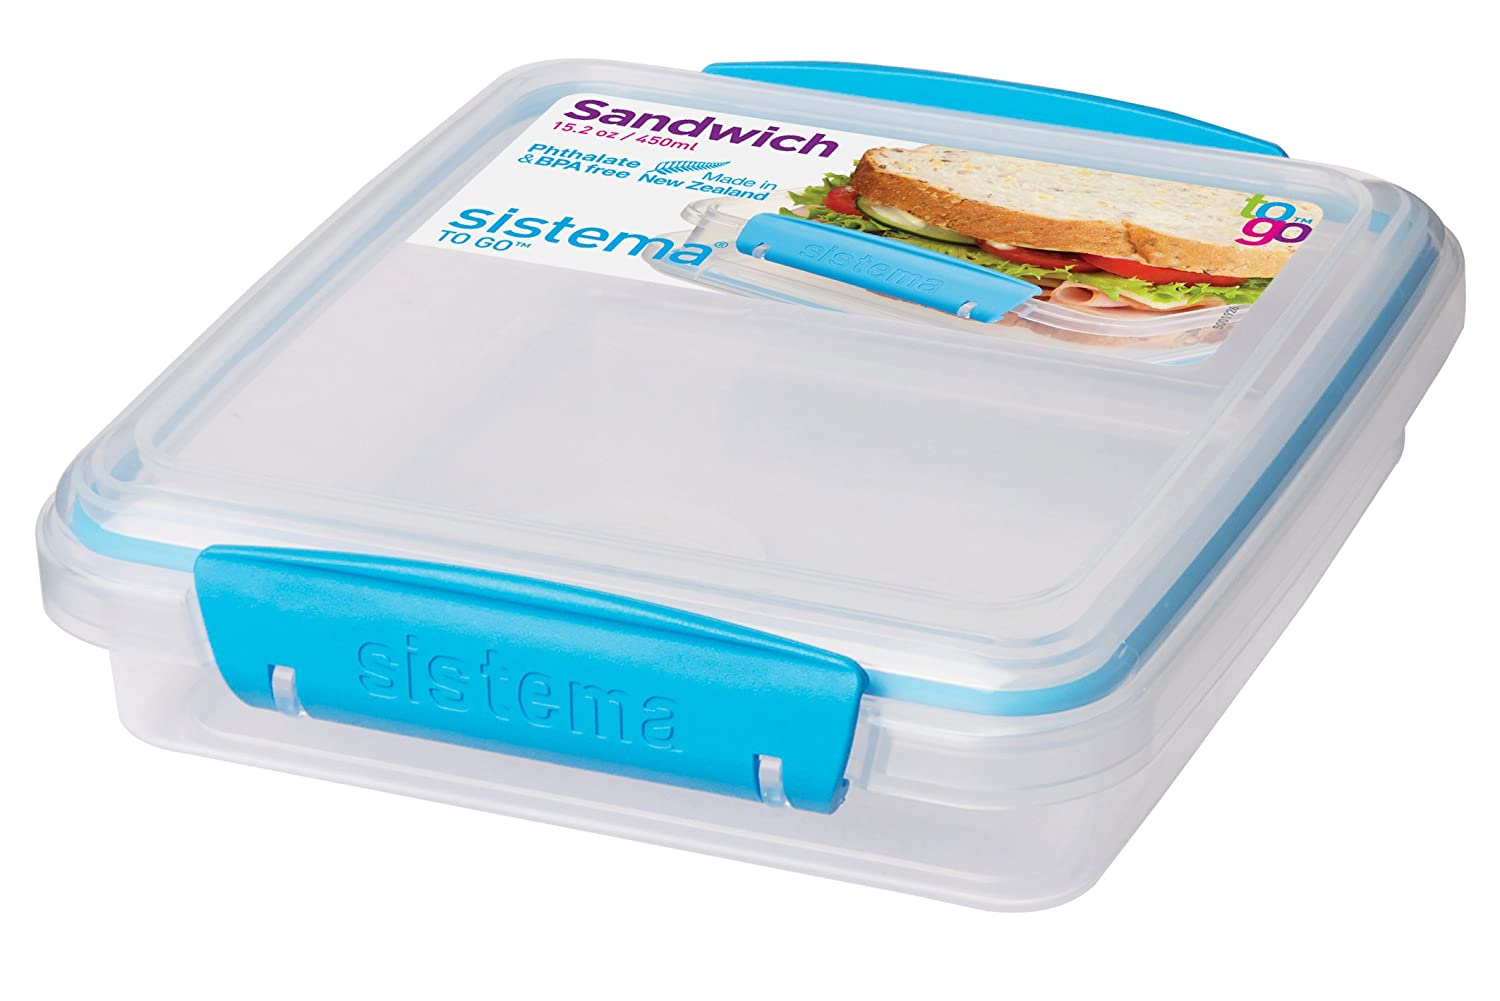 Sistema To Go Collection Sandwich Box Food Storage Container, 15.2 oz, Blue